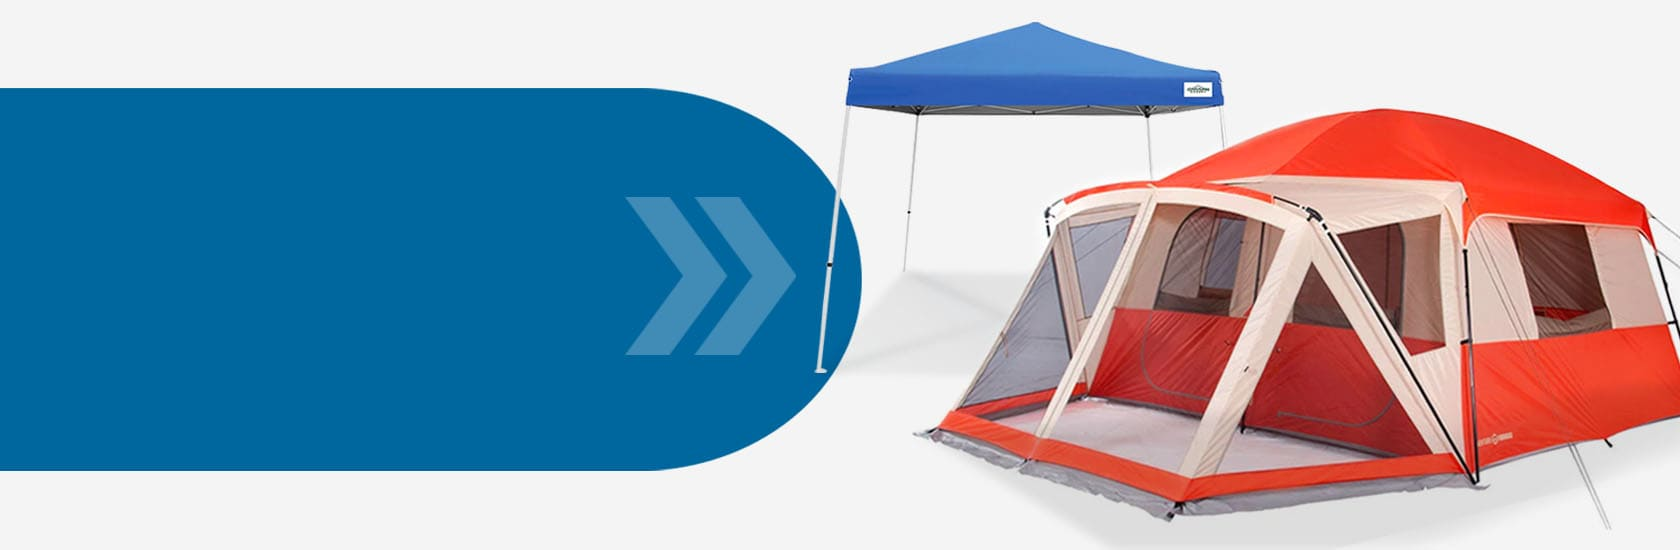 Shop up to 30% off Shelters & Tents